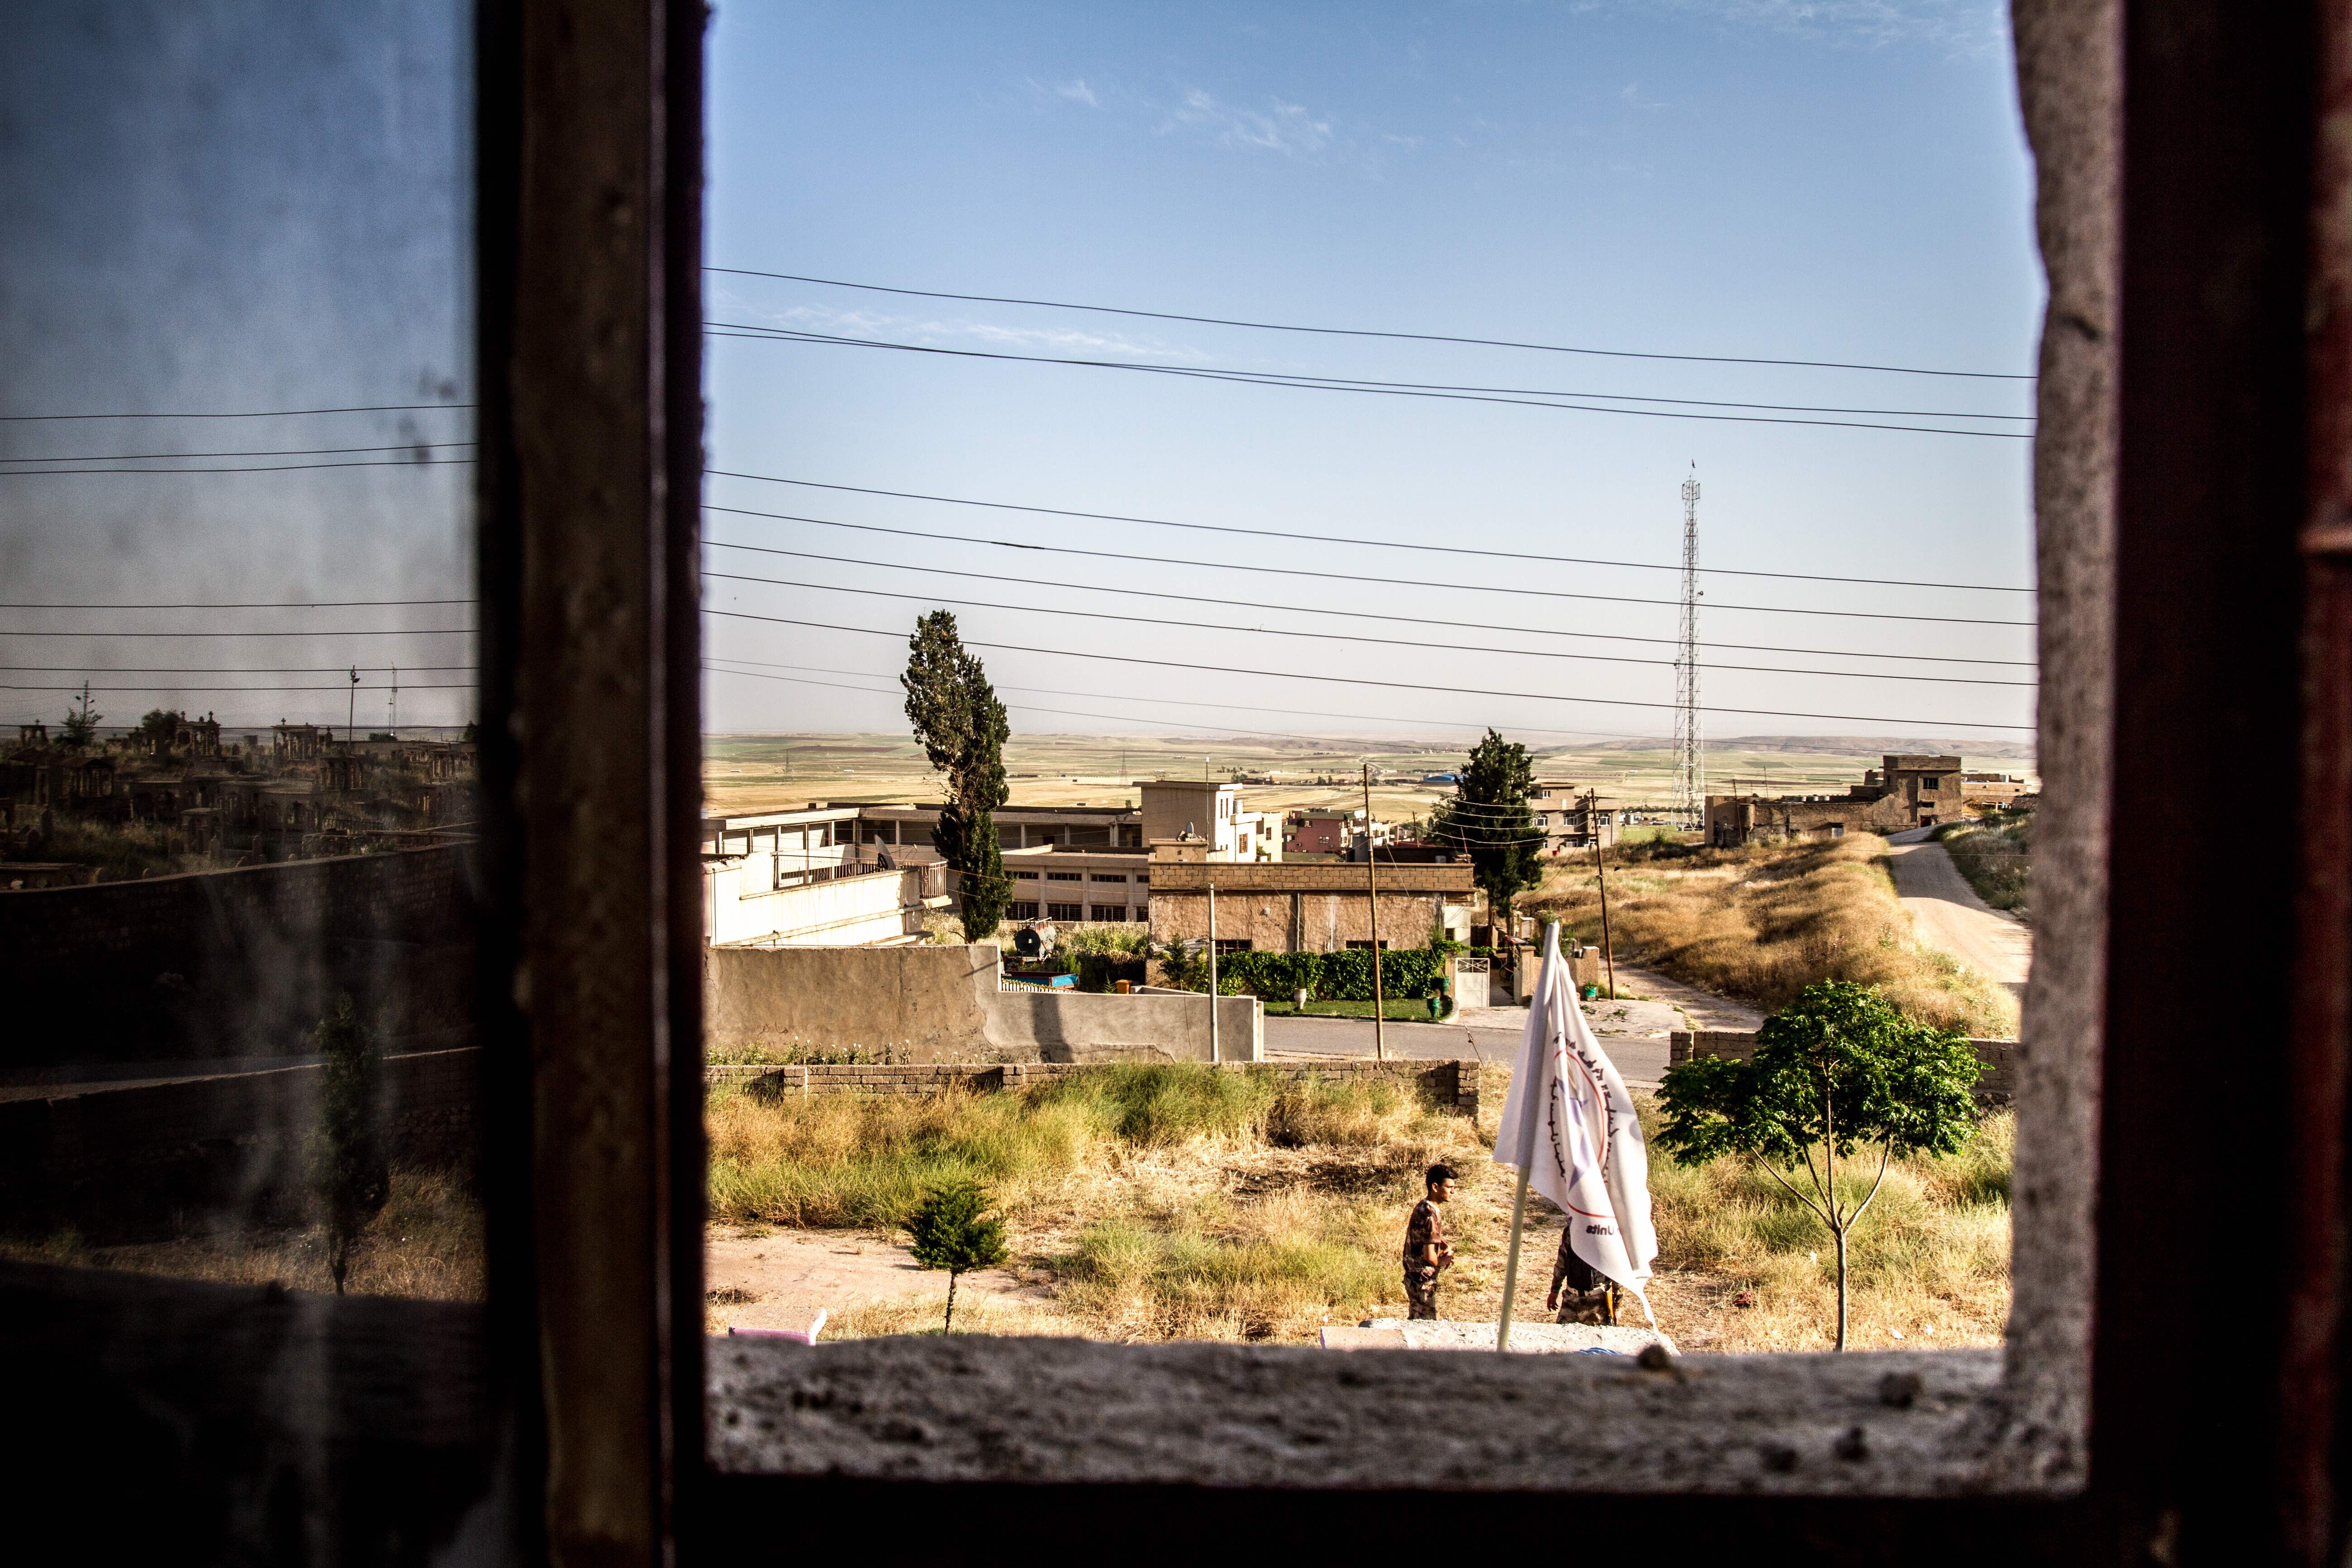 View from the firing tower in Alqosh used by snipers, manned by the Nineveh Protection Unit, another Christian-formed militia in the region. © Jan Husar